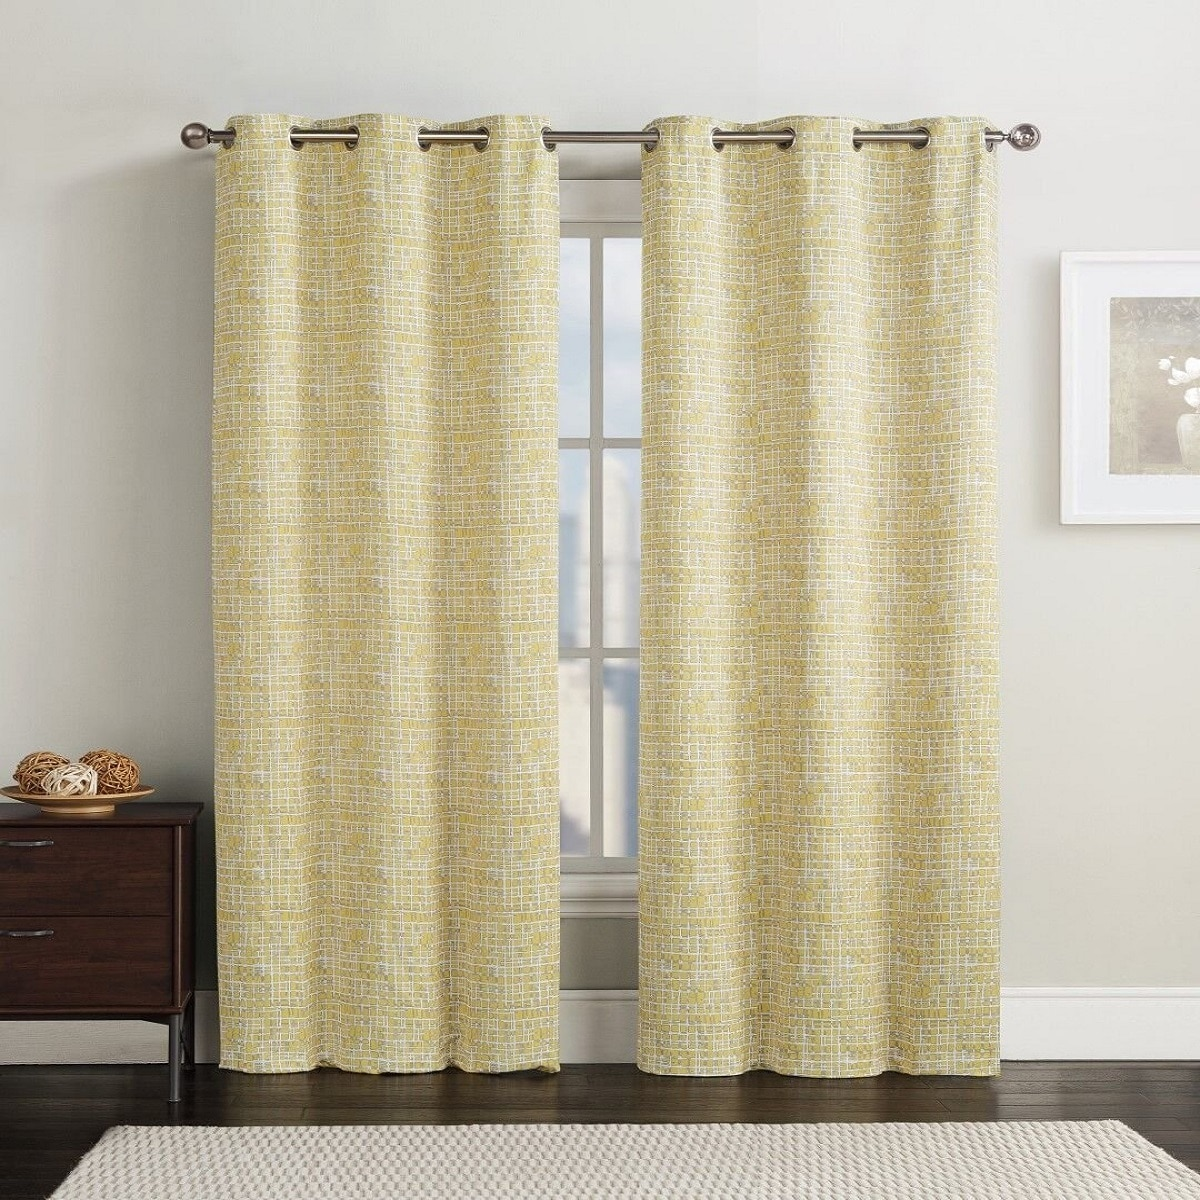 Lenox Thermal Room Darkening Curtain Panels With Grommets